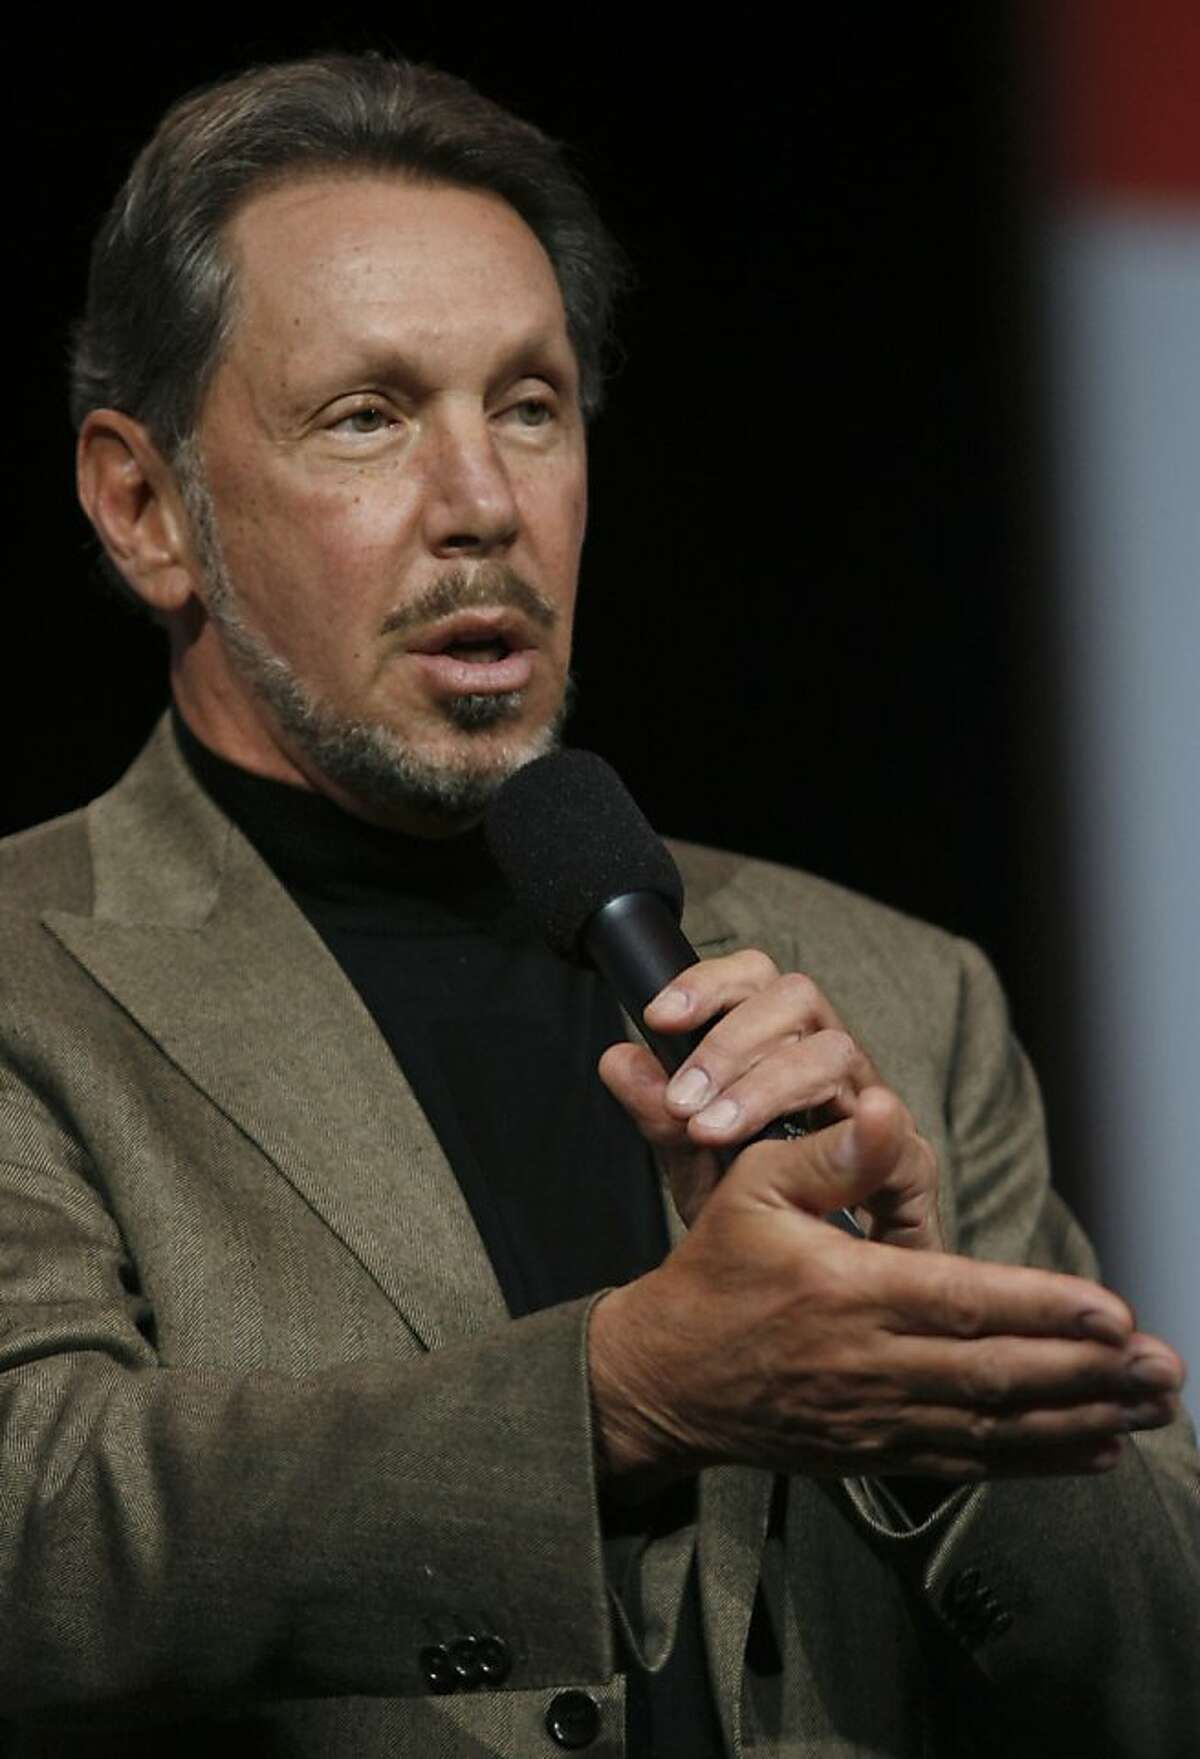 """Larry Ellison is stepping down as CEO for Oracle.Oracle CEO Larry Ellison delivers a keynote at the Moscone Center in San Francisco during the Oracle OpenWorld 2011 in this October 5, 2011 file photo in California. Ellison, who bought his own Hawaiian island last year, now has an airline to go with it. Island Air, a regional carrier based in the Pacific island state, announced February 27, 2013 that it had closed its sale to a newly formed holding company owned by Ellison, co-founder and chief executive of business software firm Oracle. """"This is another major investment and commitment to Hawaii,"""" said a statement by Paul Marinelli, vice president of Lawrence Investments, LLC, the Ellison-owned holding company."""